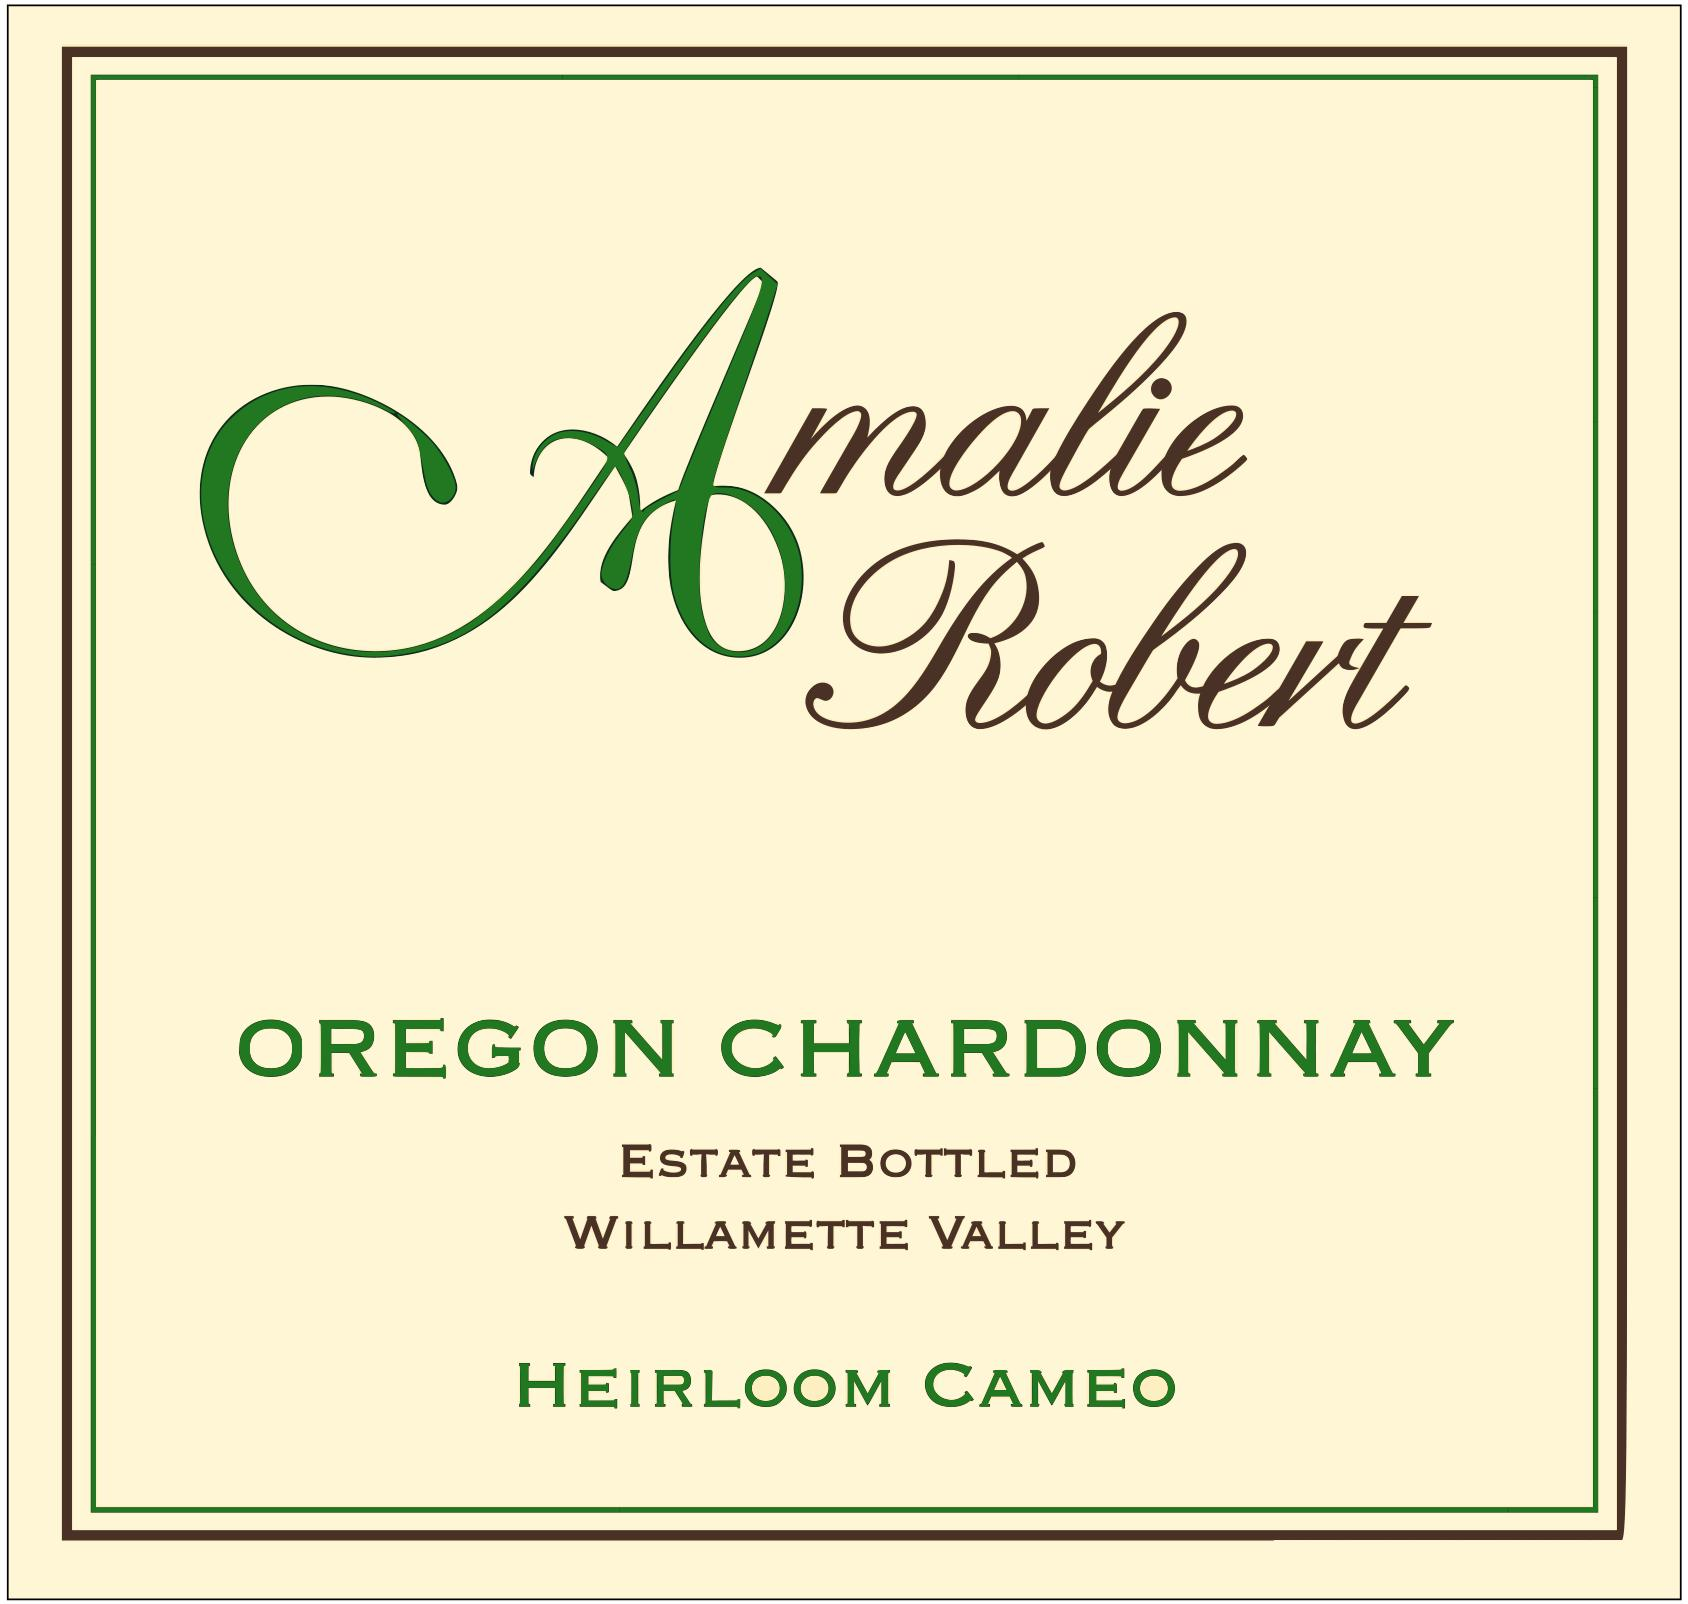 2014 Heirloom Cameo Chardonnay